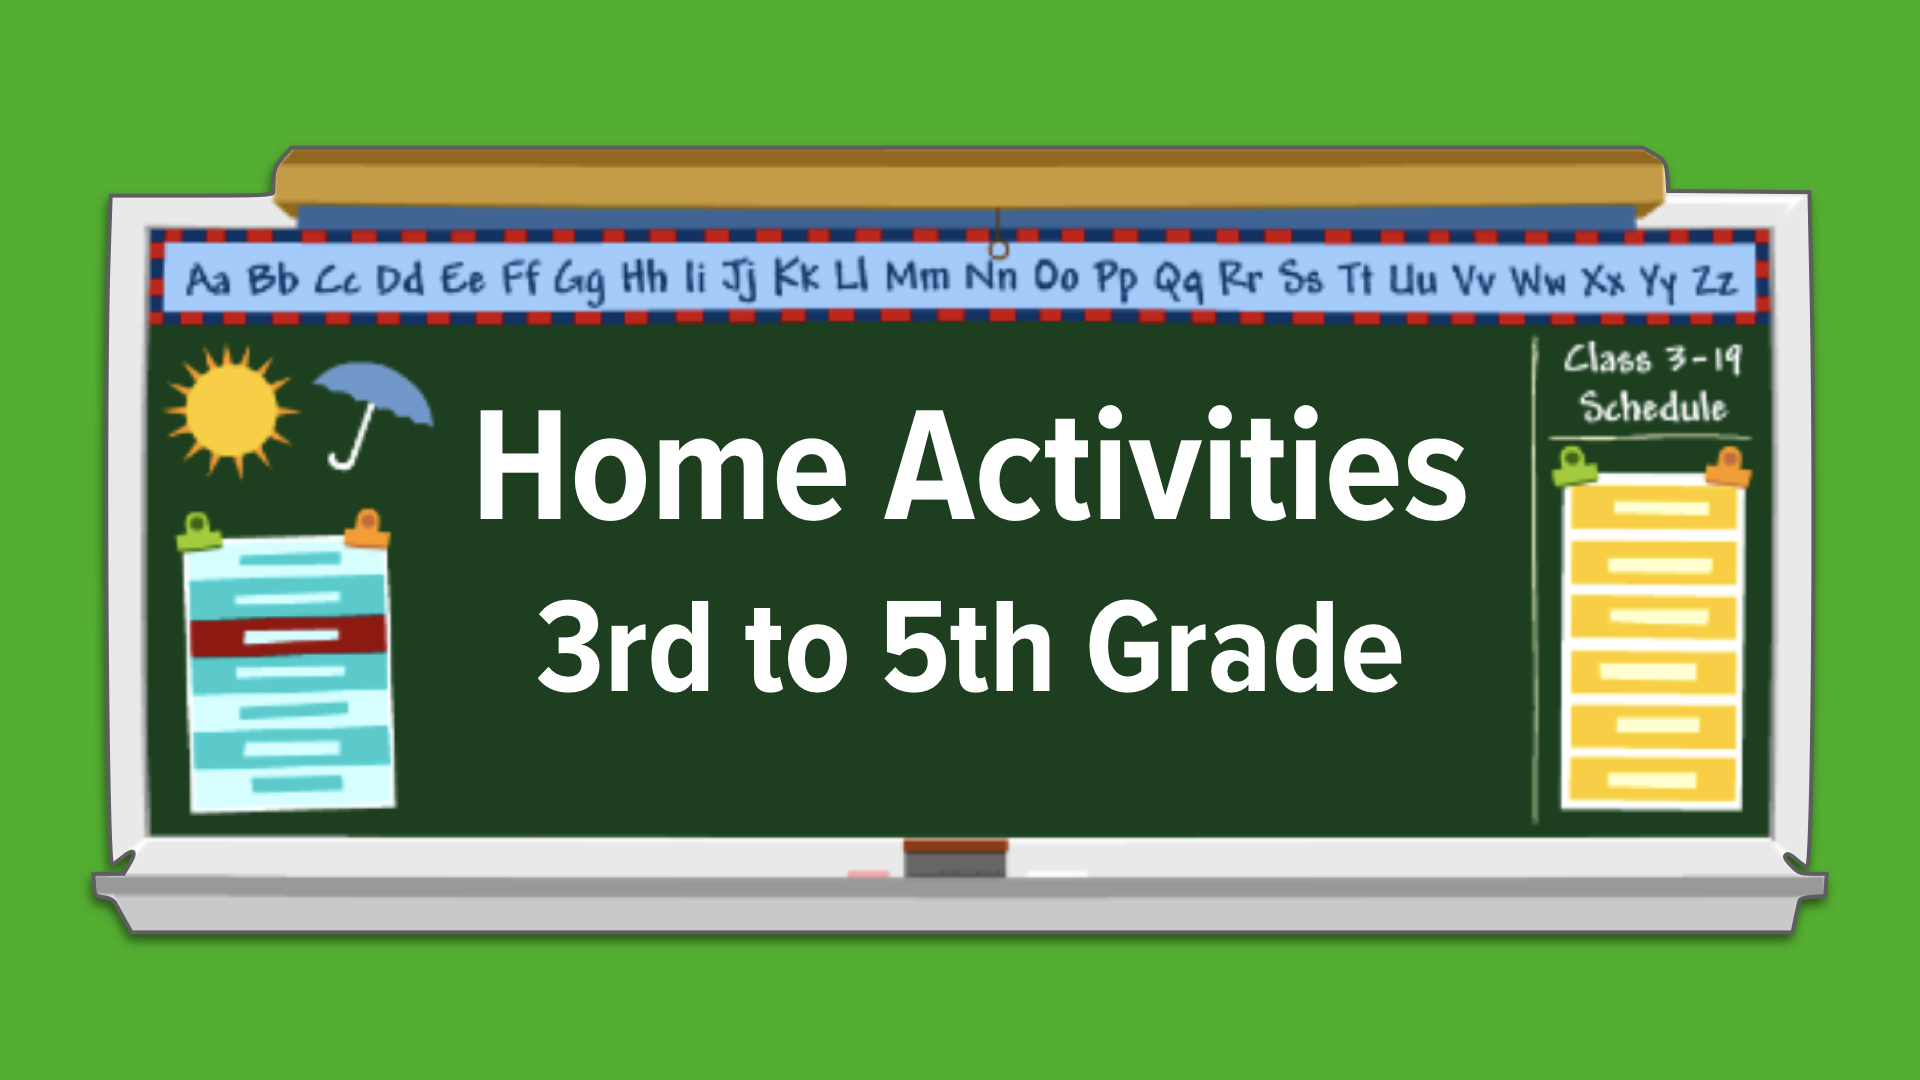 Grades 3-5 Home Activity Ideas for Using BrainPOP